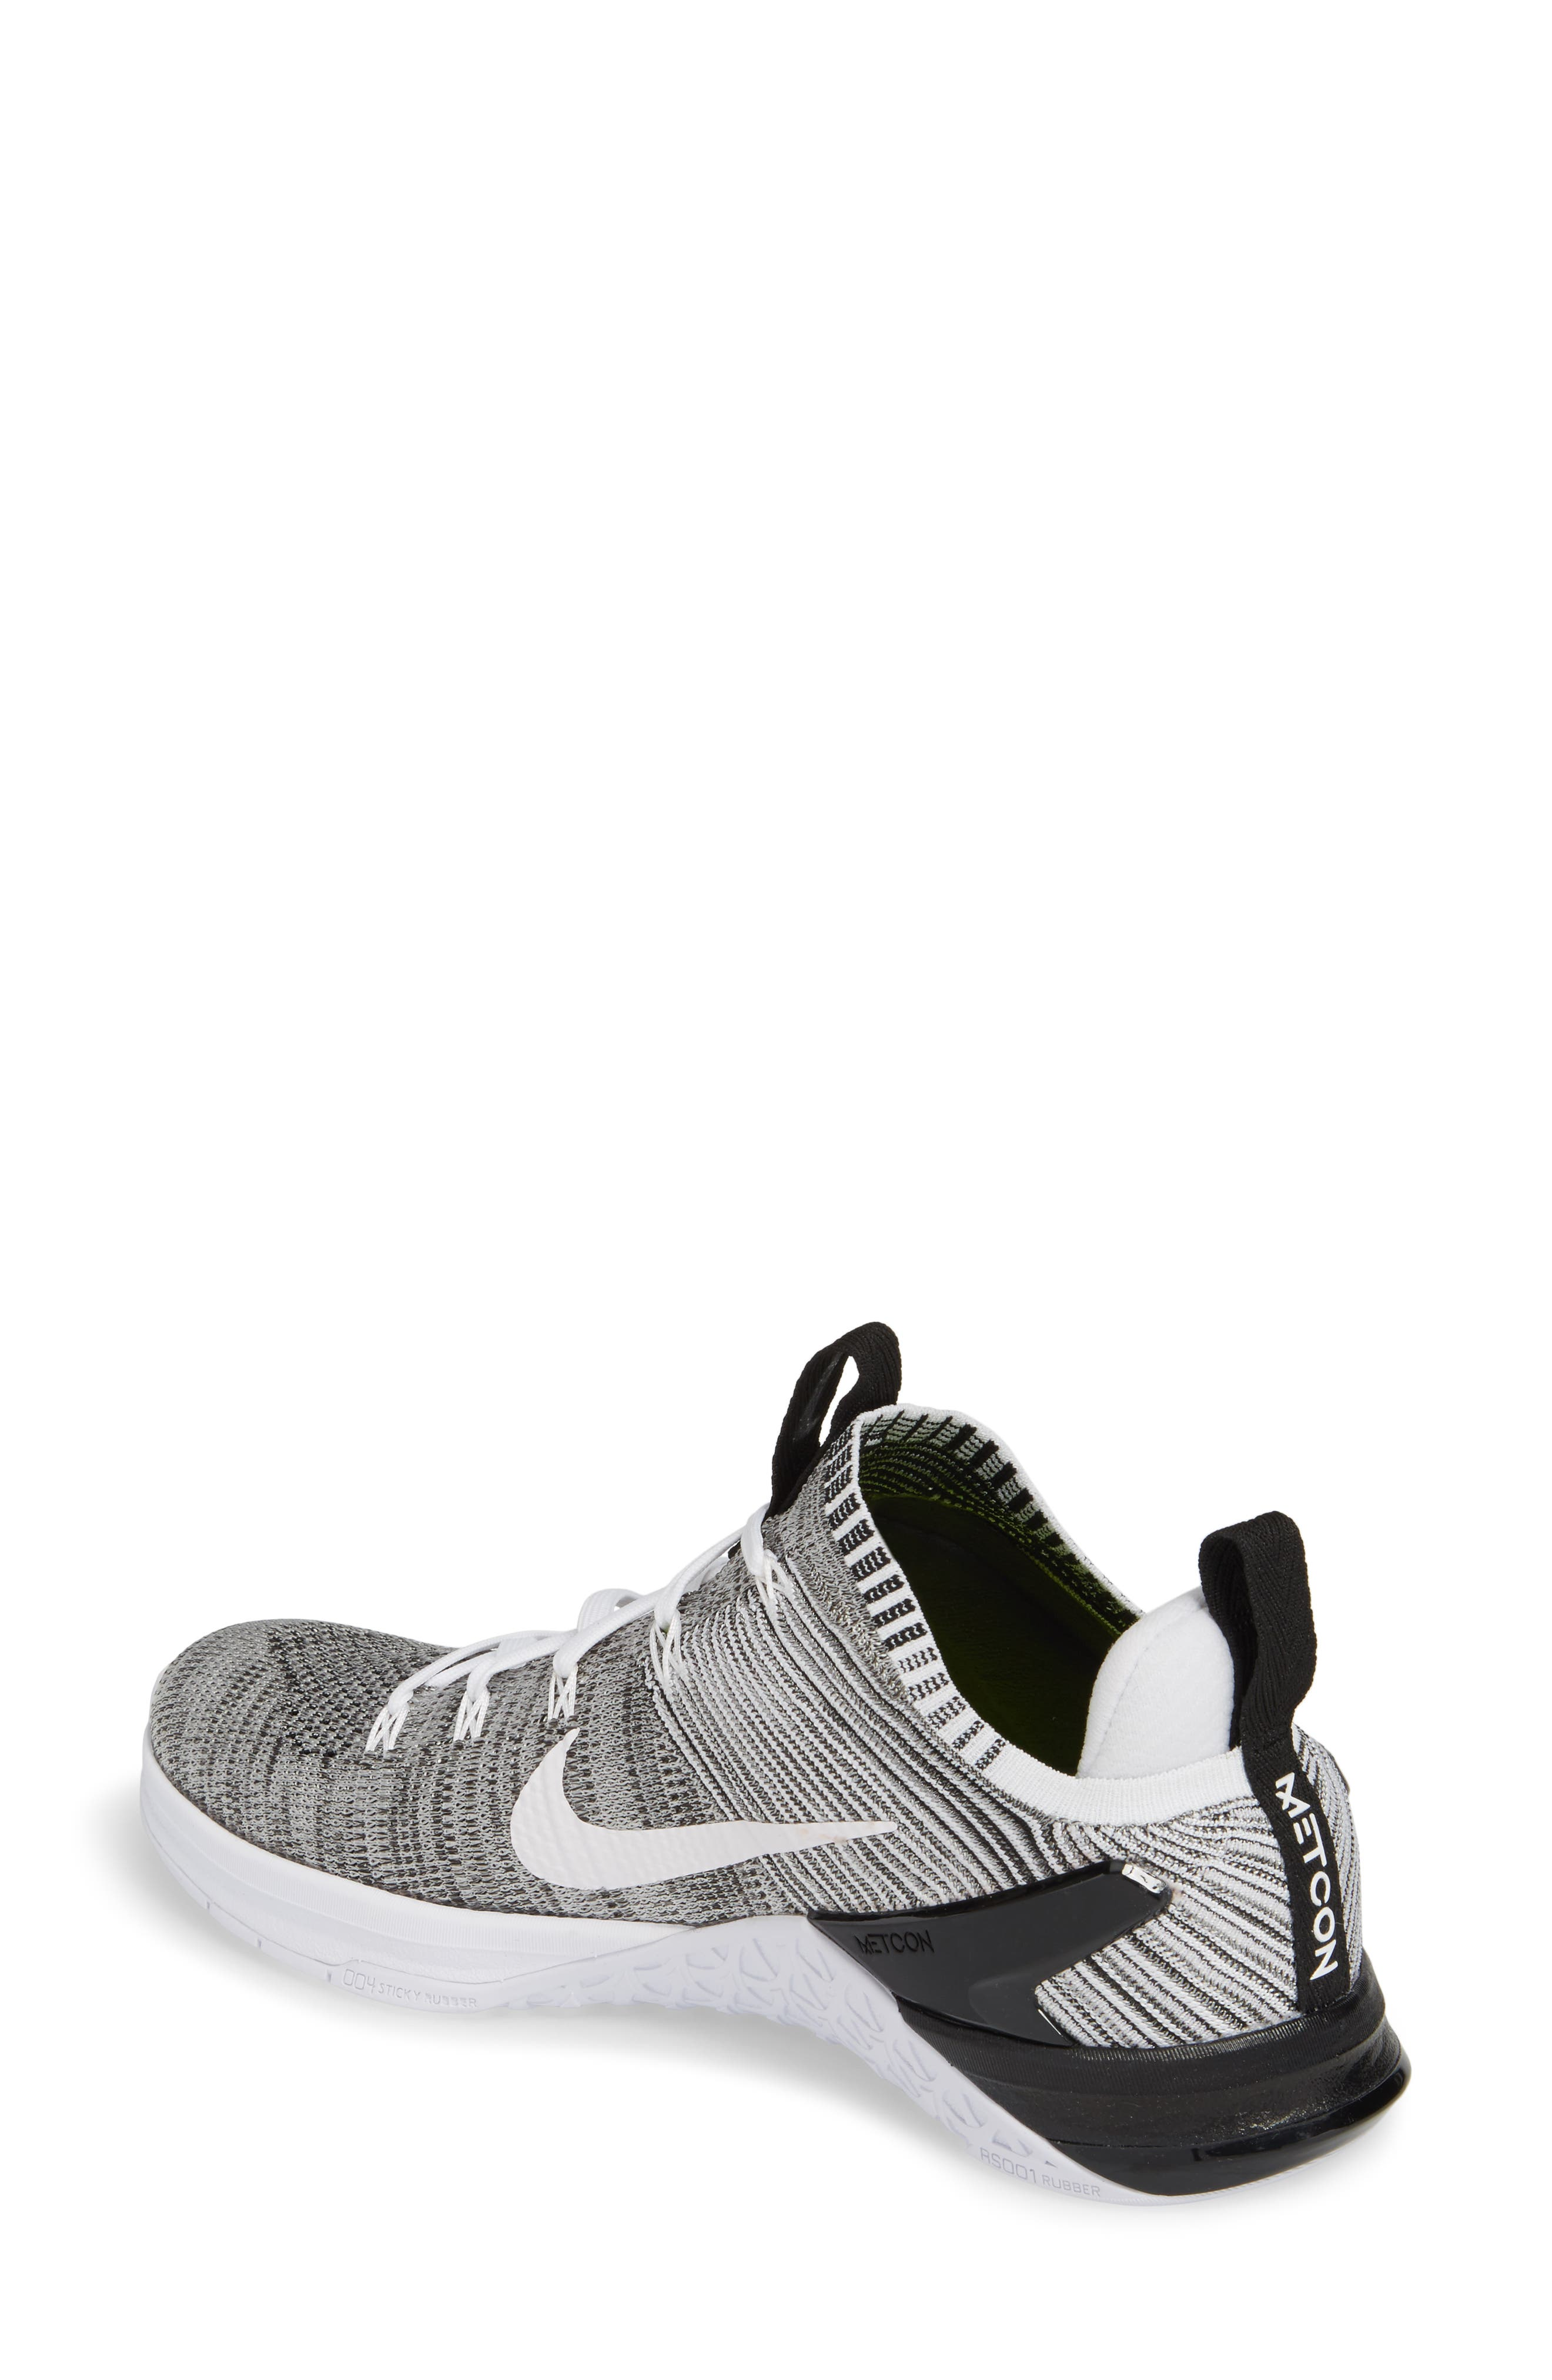 Metcon DSX Flyknit 2 Training Shoe,                             Alternate thumbnail 12, color,